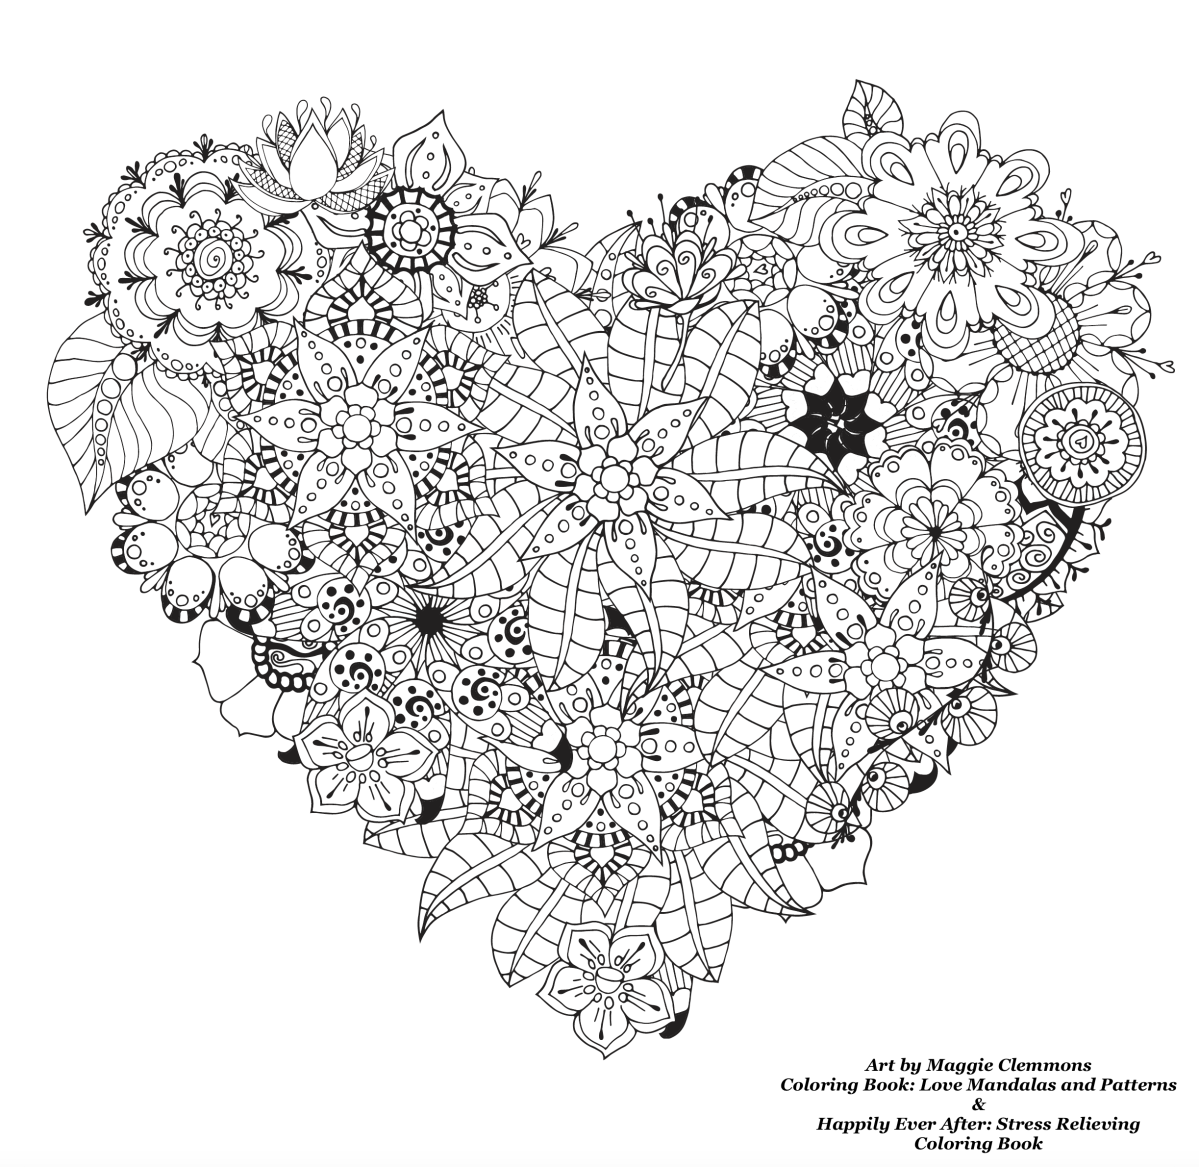 Free Coloring Pages From Maggie Clemmons Adult Coloring